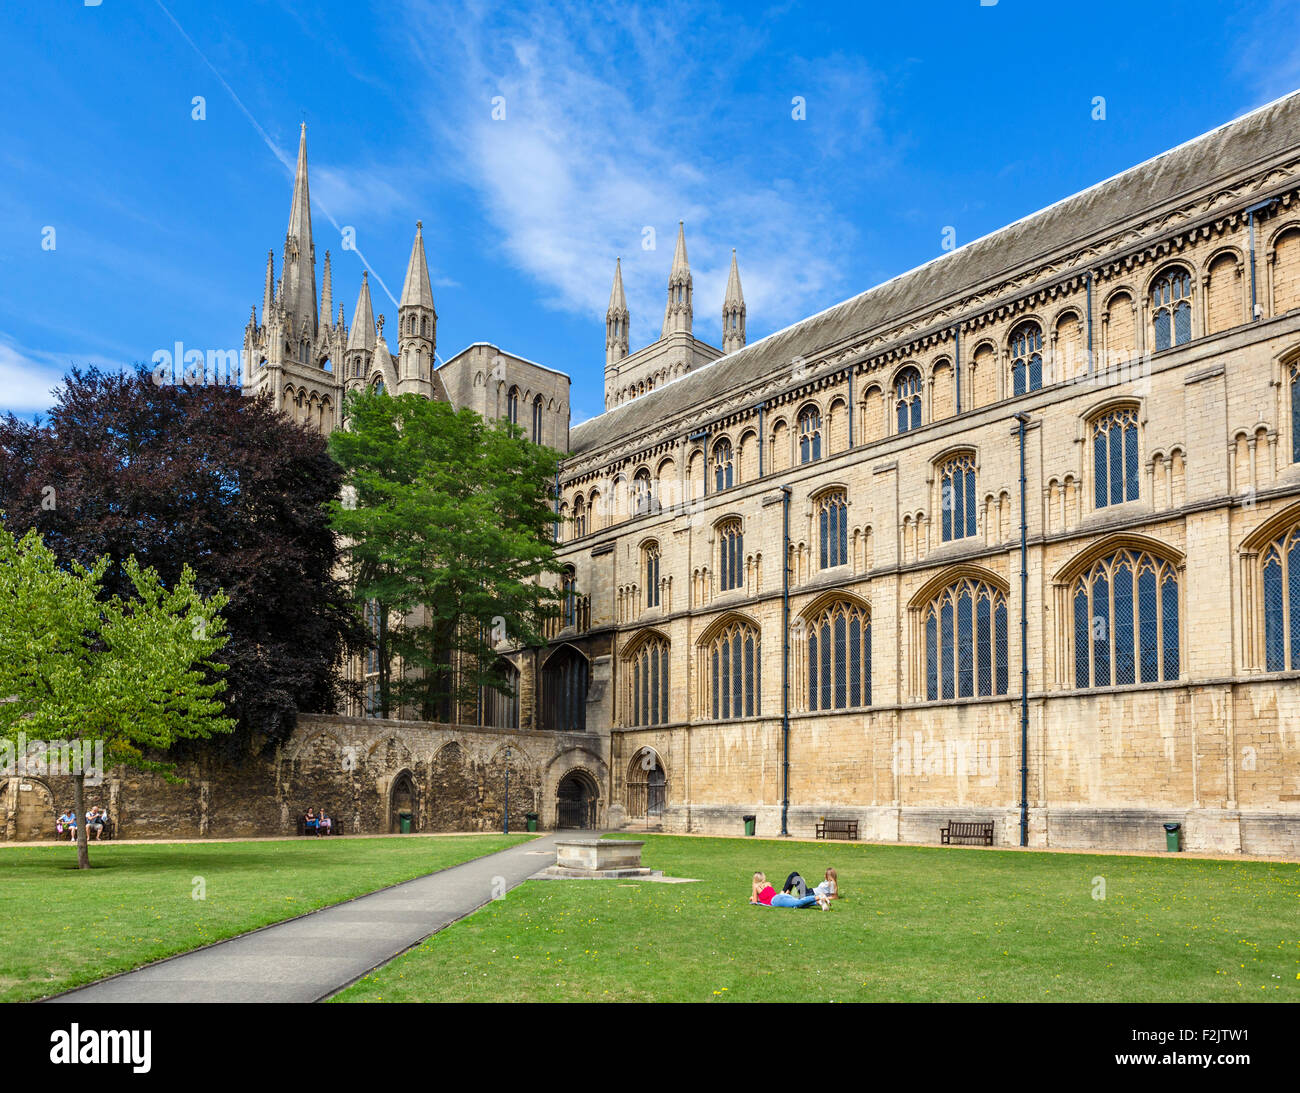 Peterborough Cathedral from the Cloisters, Peterborough, Cambridgeshire, England, UK - Stock Image